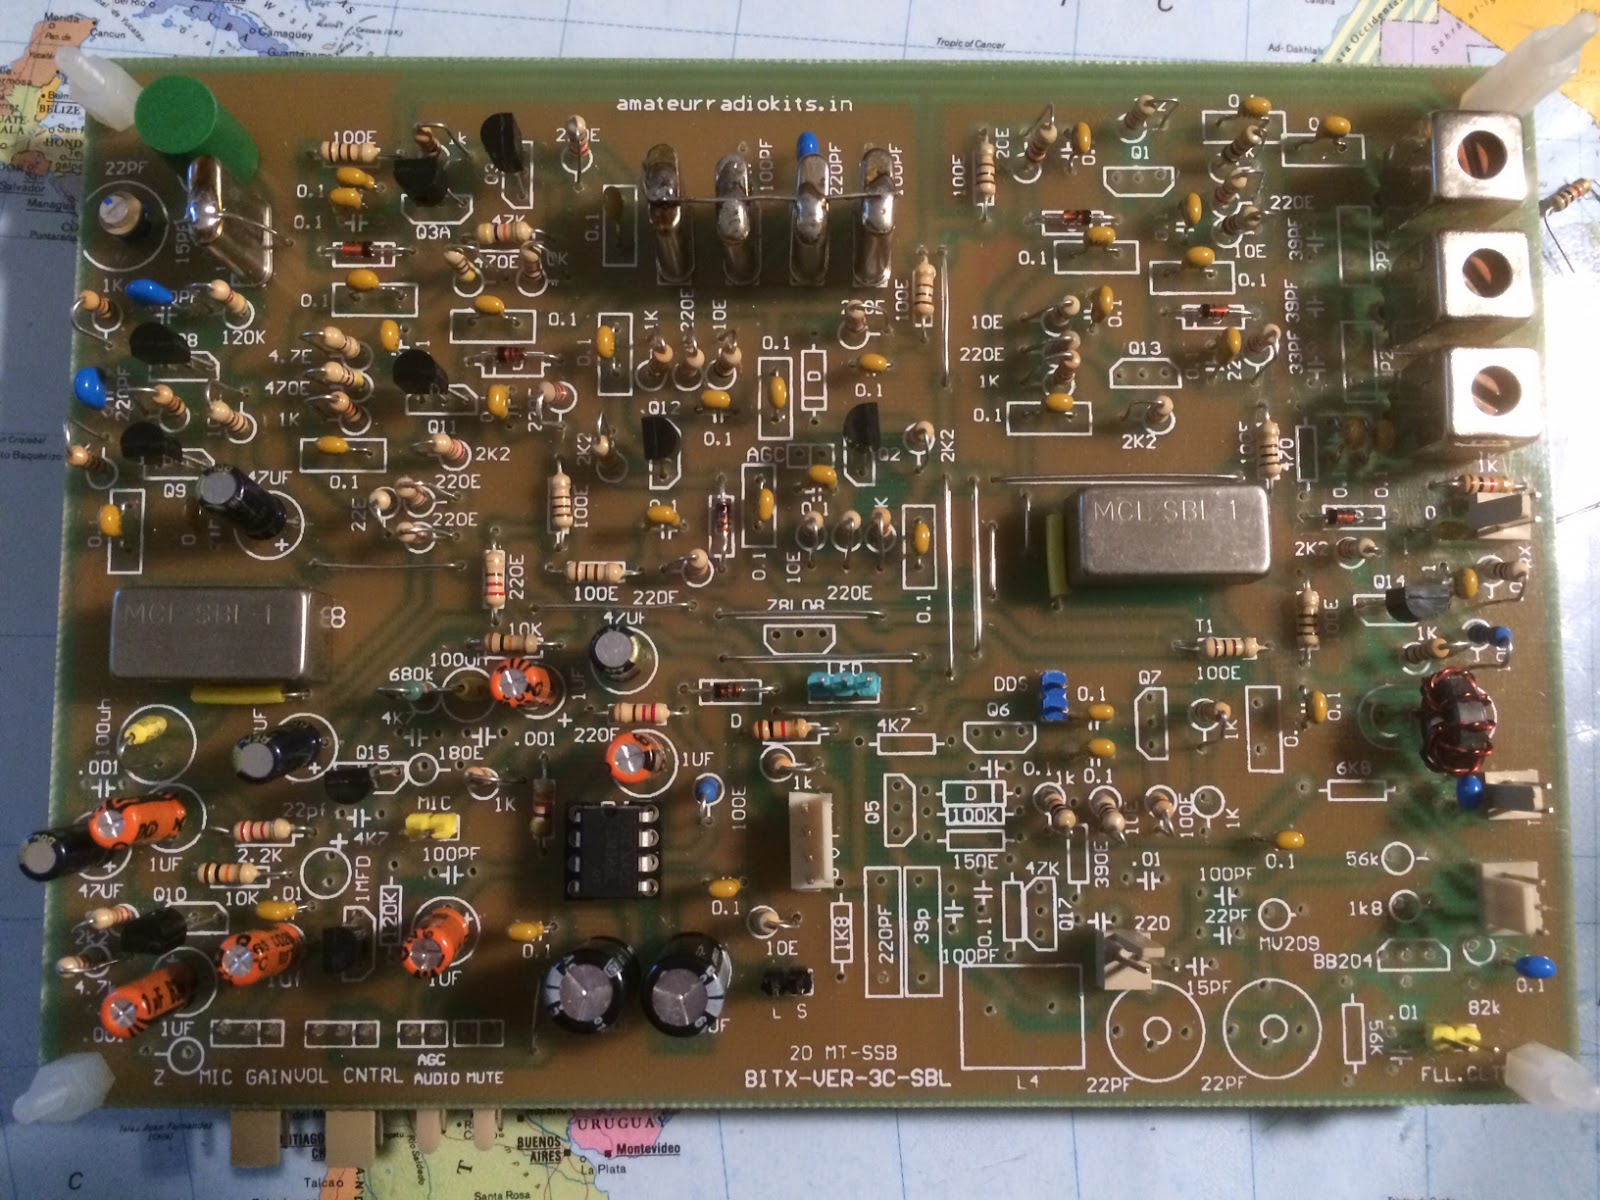 M0ICR - Radio and RF Electronics: Building the new Bitx for 40m